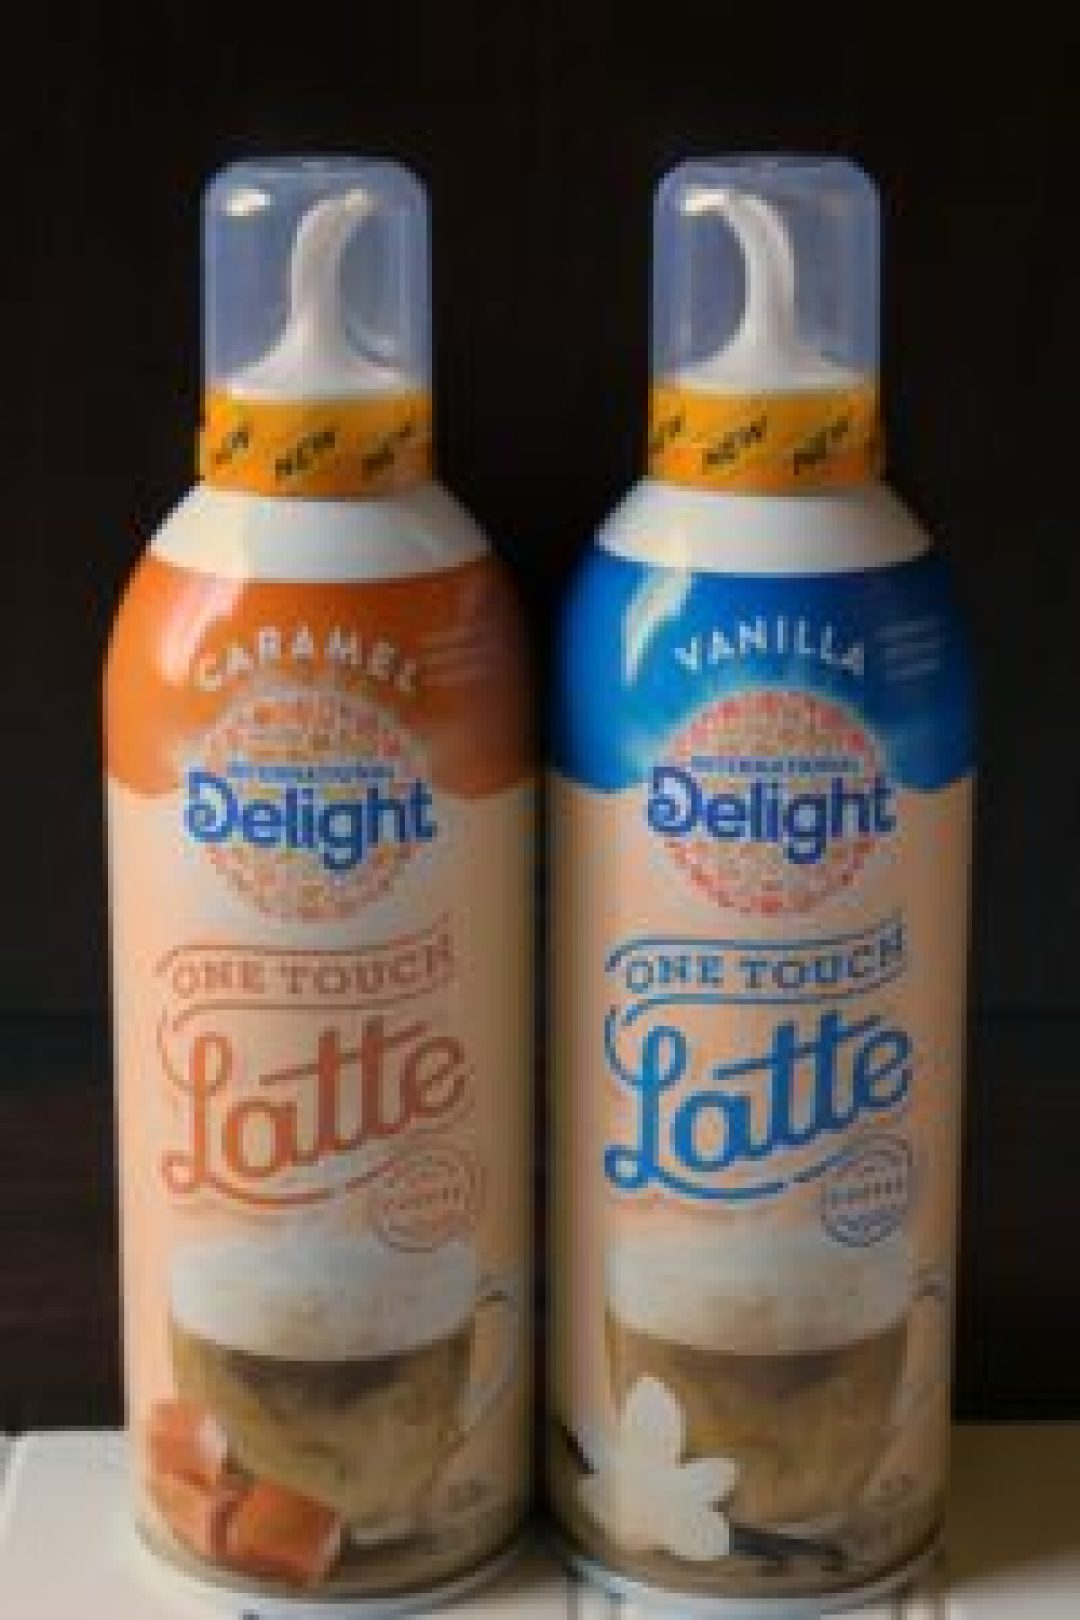 Vanilla One Touch Latte